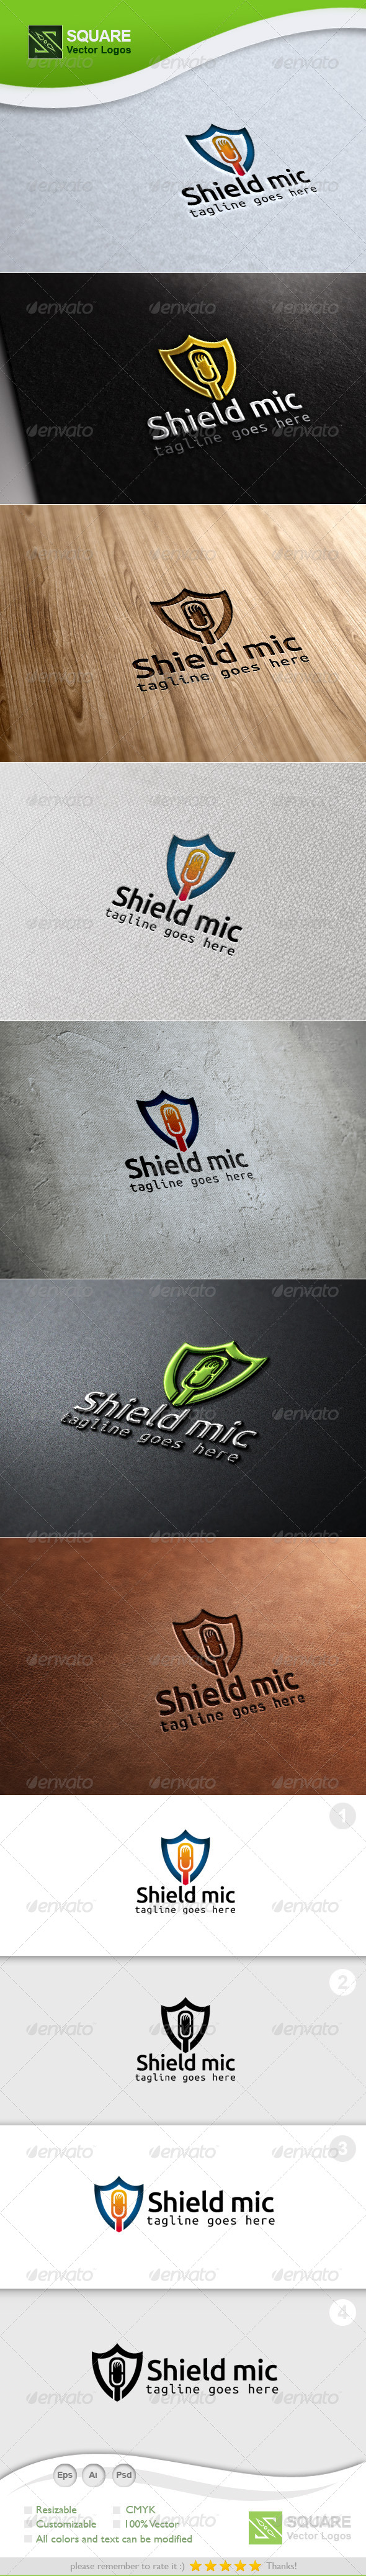 Shield, Mic Vector Logo Template - Symbols Logo Templates